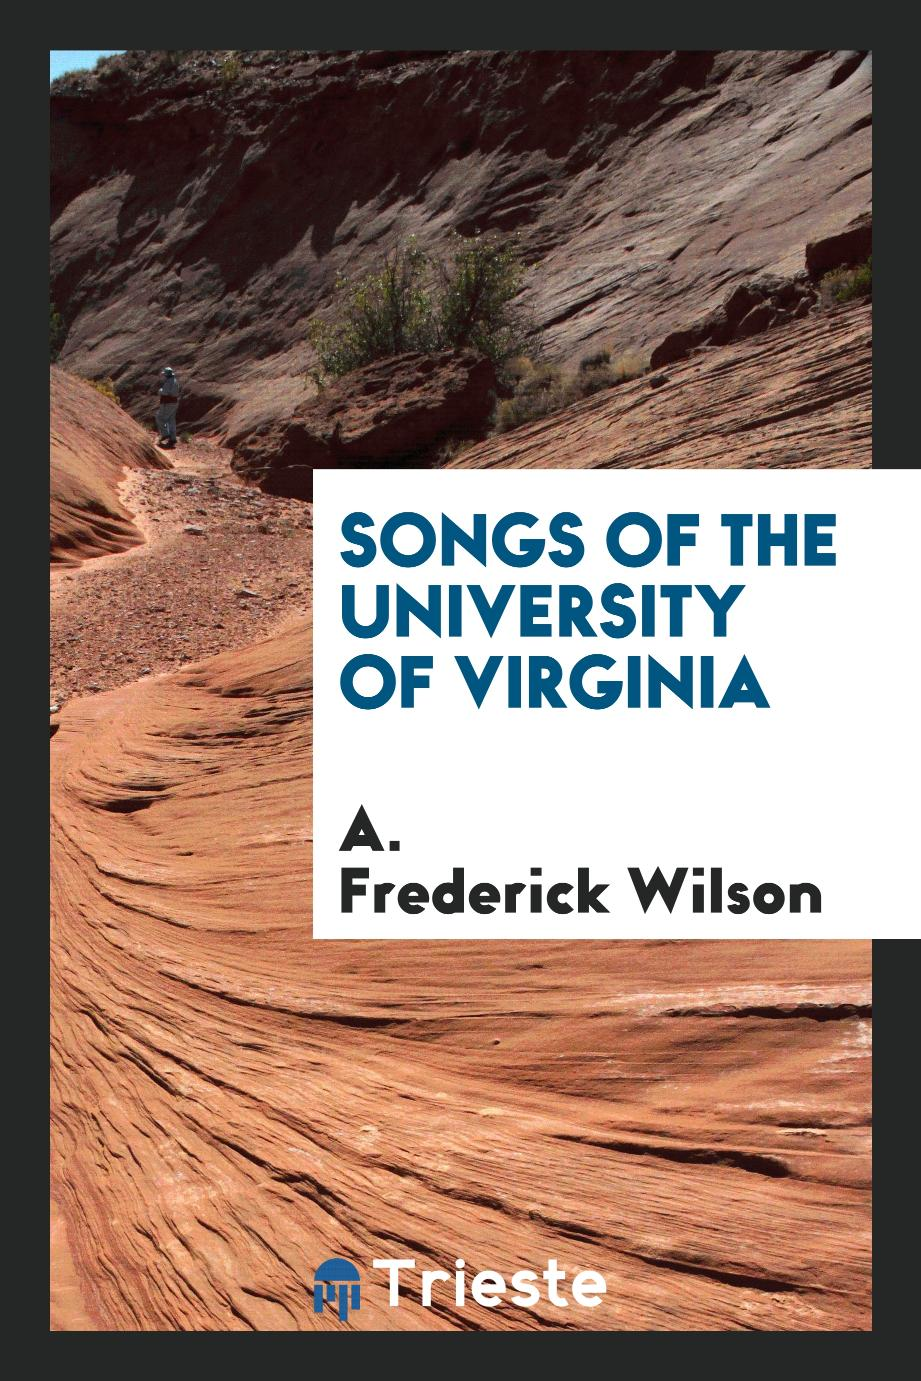 Songs of the University of Virginia